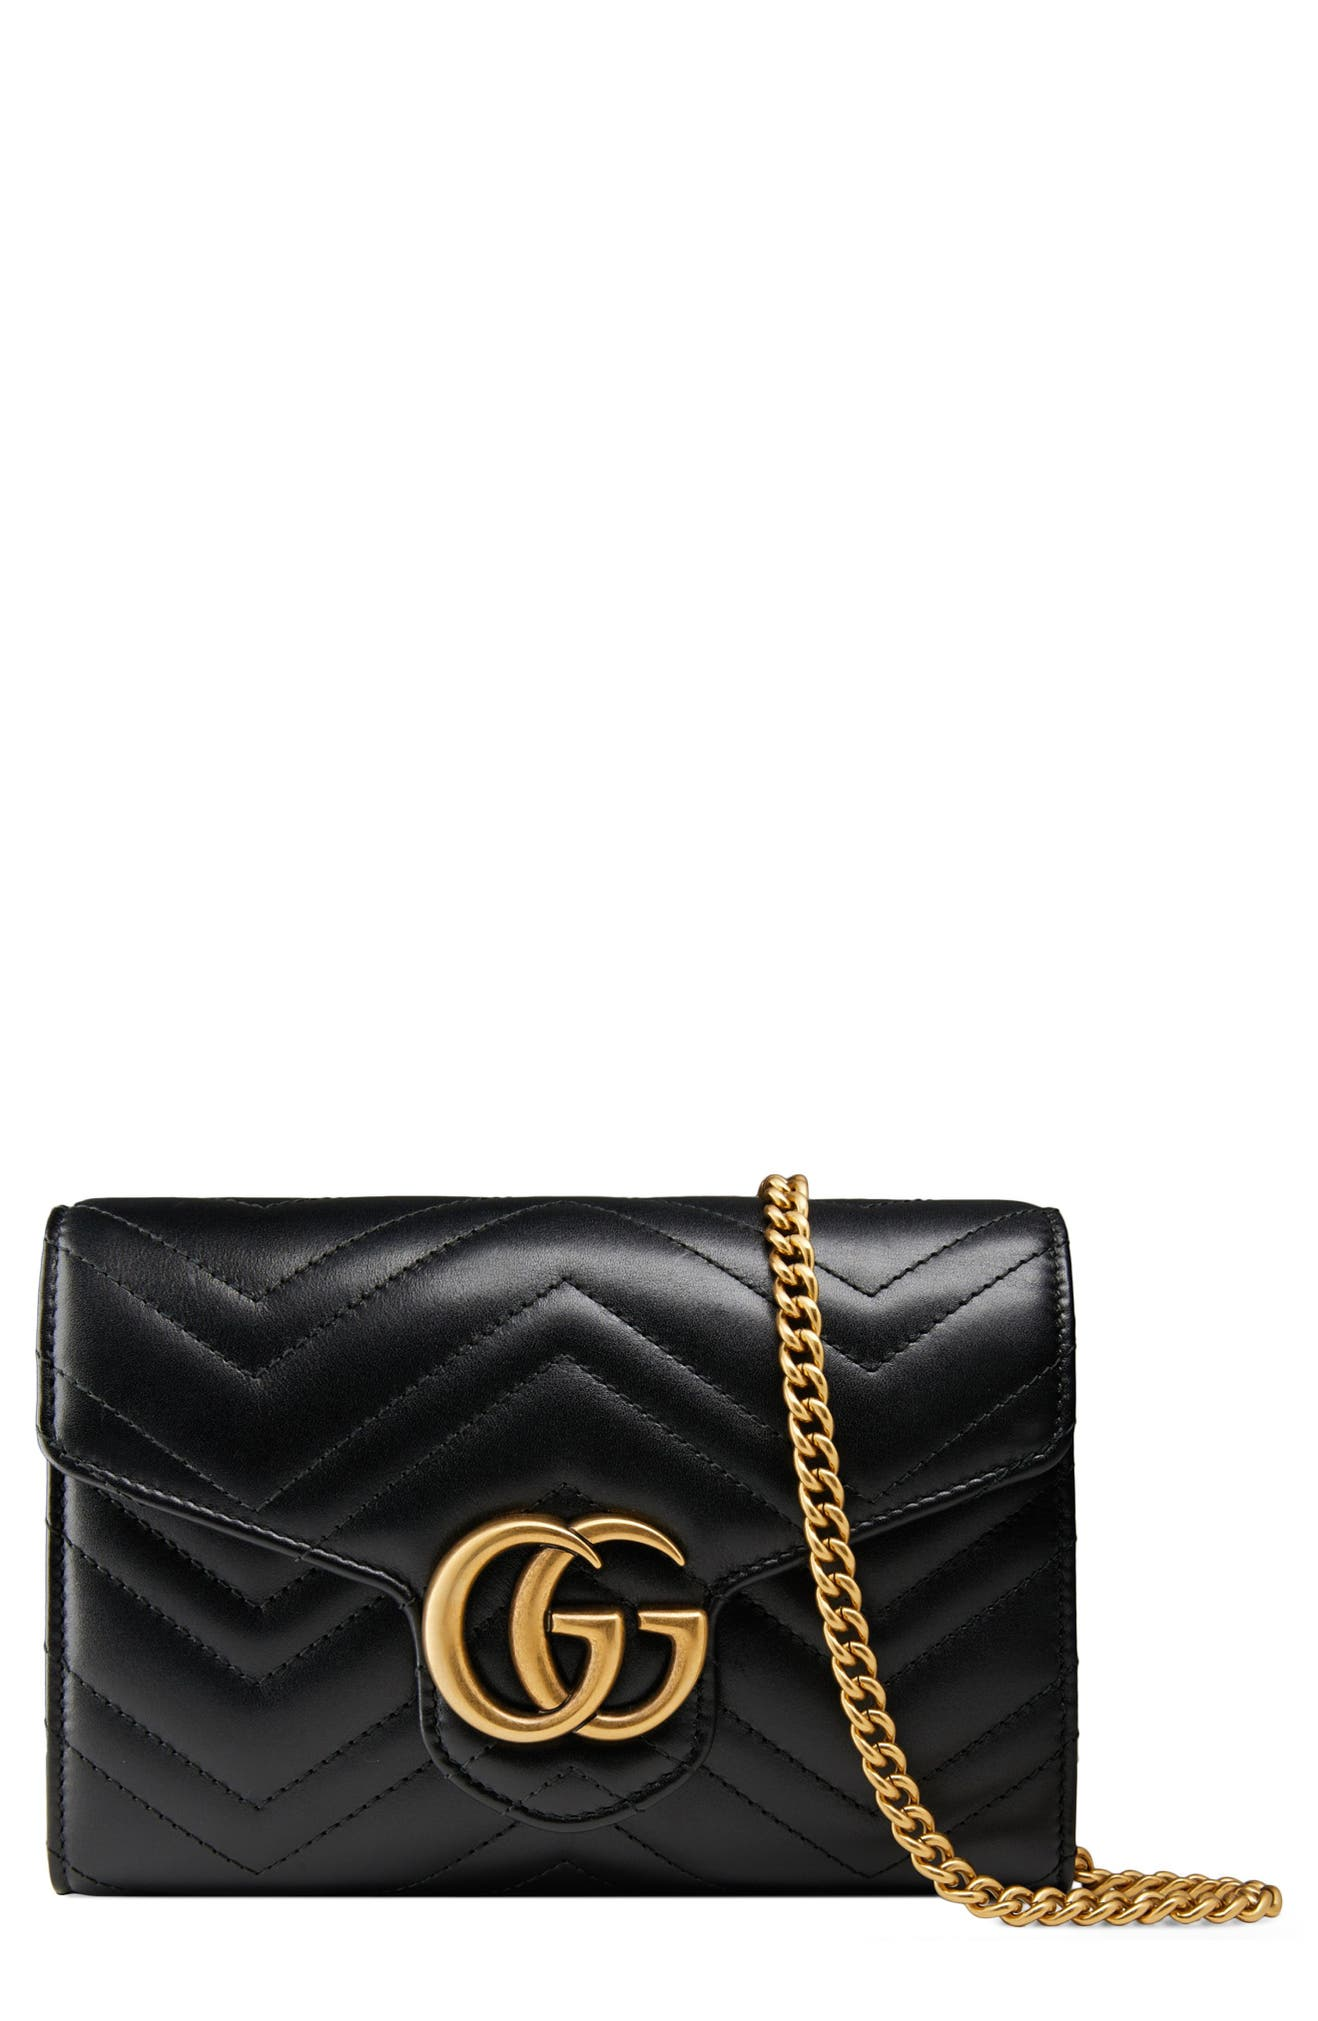 32c5eeb32 Gucci GG Marmont Matelassé Leather Wallet on a Chain | Nordstrom